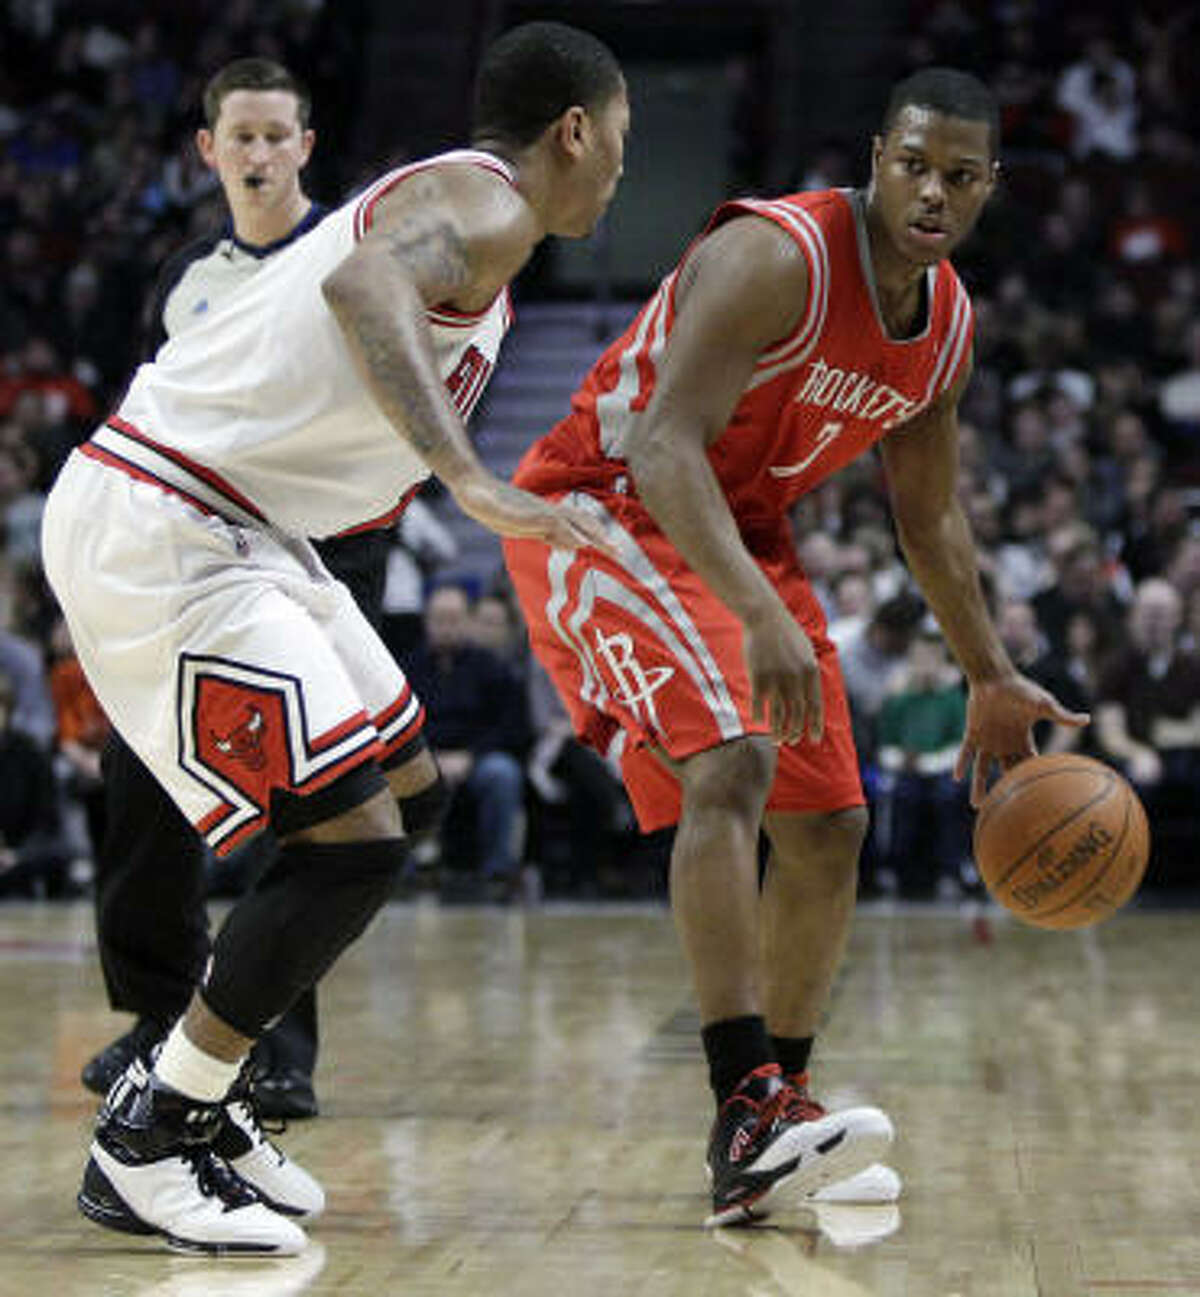 Rockets guard Kyle Lowry, right, looks to a pass against Bulls guard Derrick Rose during the first quarter on Saturday.